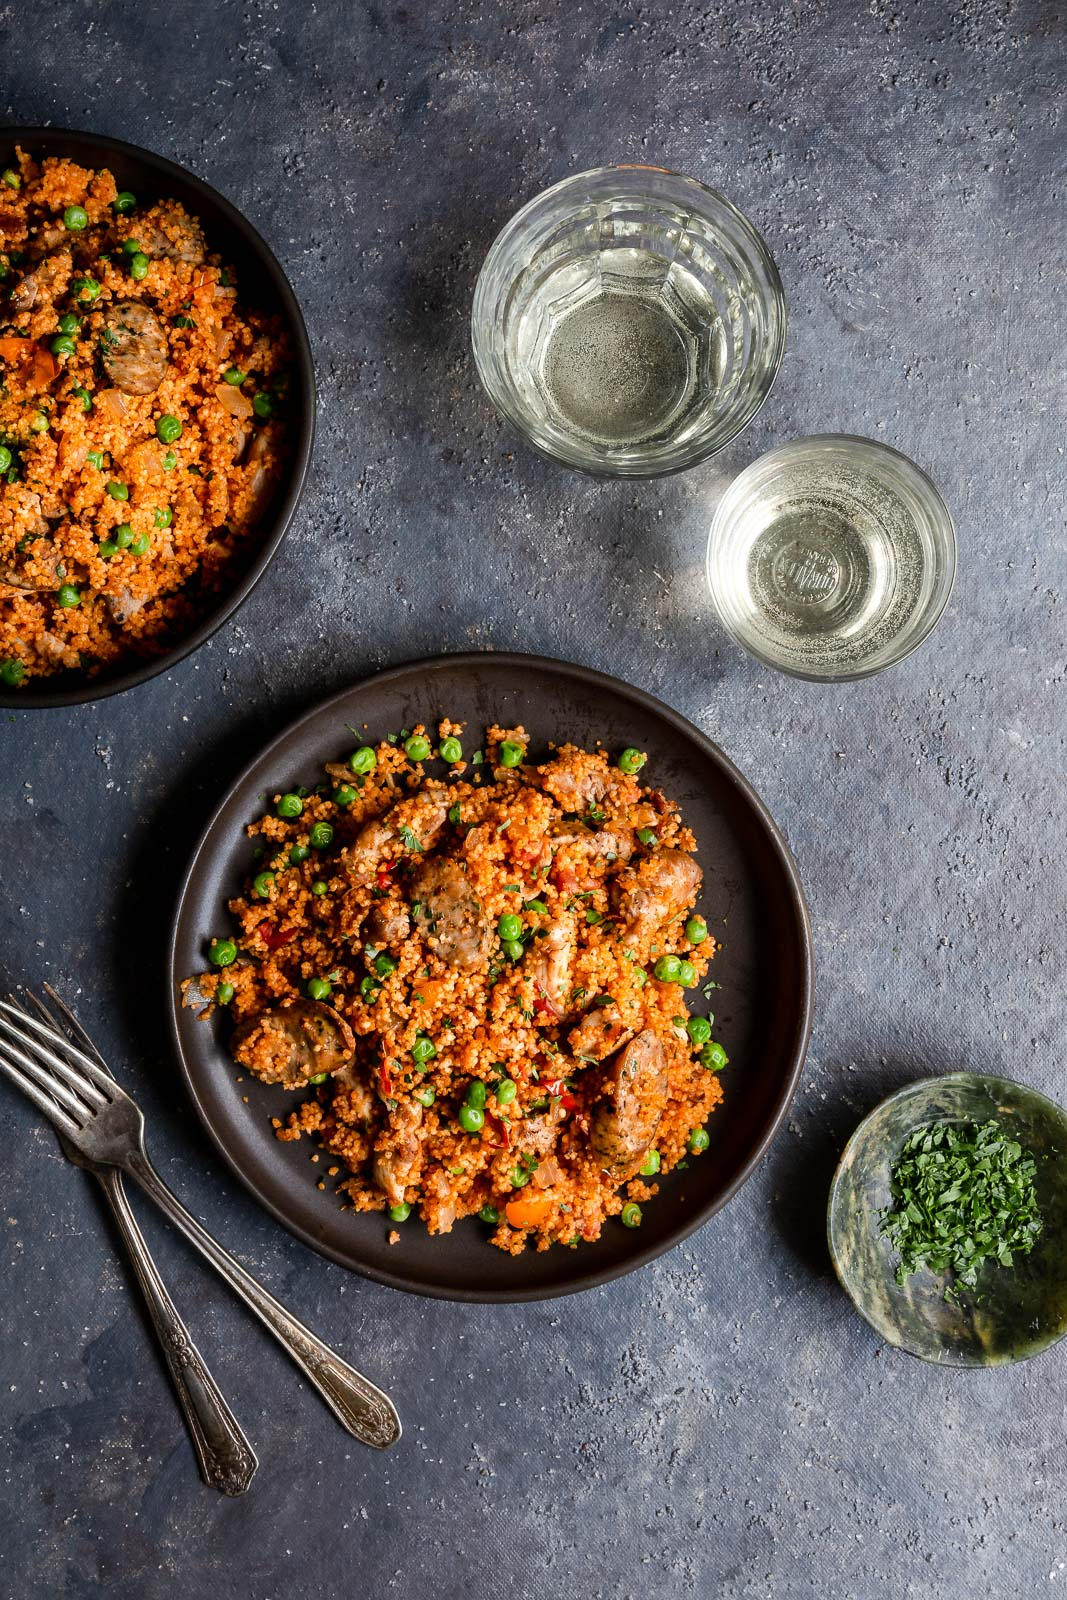 Overhead view of chicken and sausage couscous paella  on a brown plates with glasses of white wine.